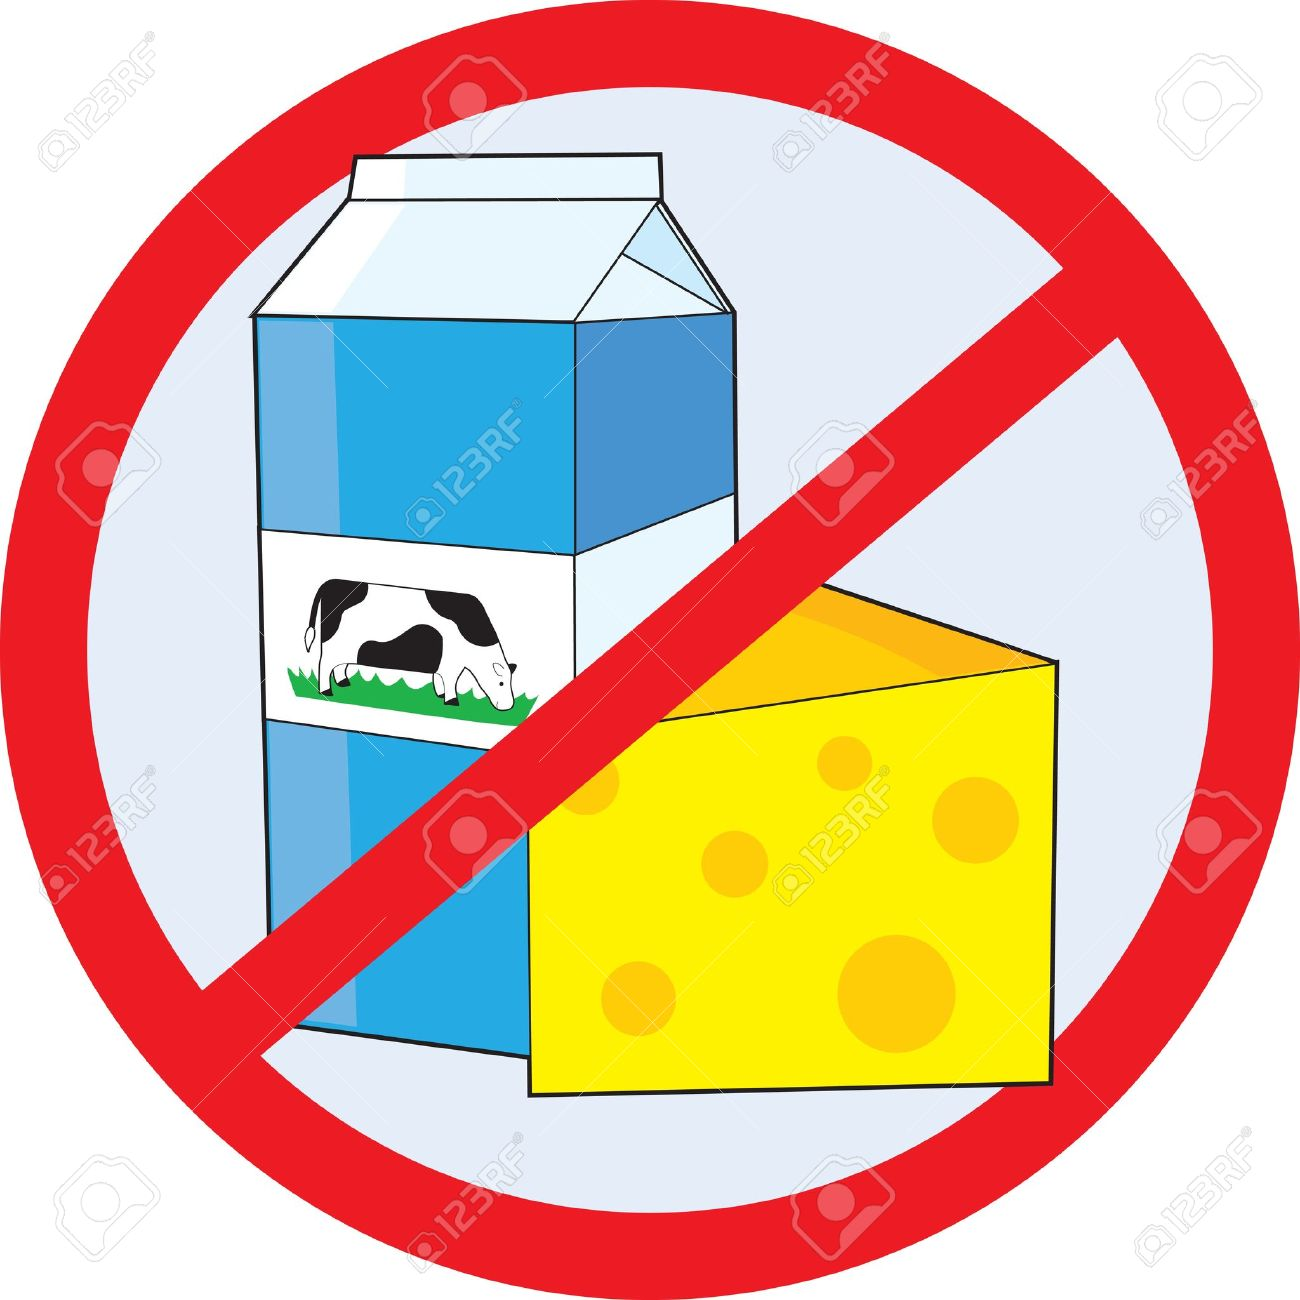 A red circle outline with a slash through it, is superimposed over a piece of cheese and a milk carton with a picture of a cow on the side, clearly indicating NO DAIRY Stock Photo - 12808691